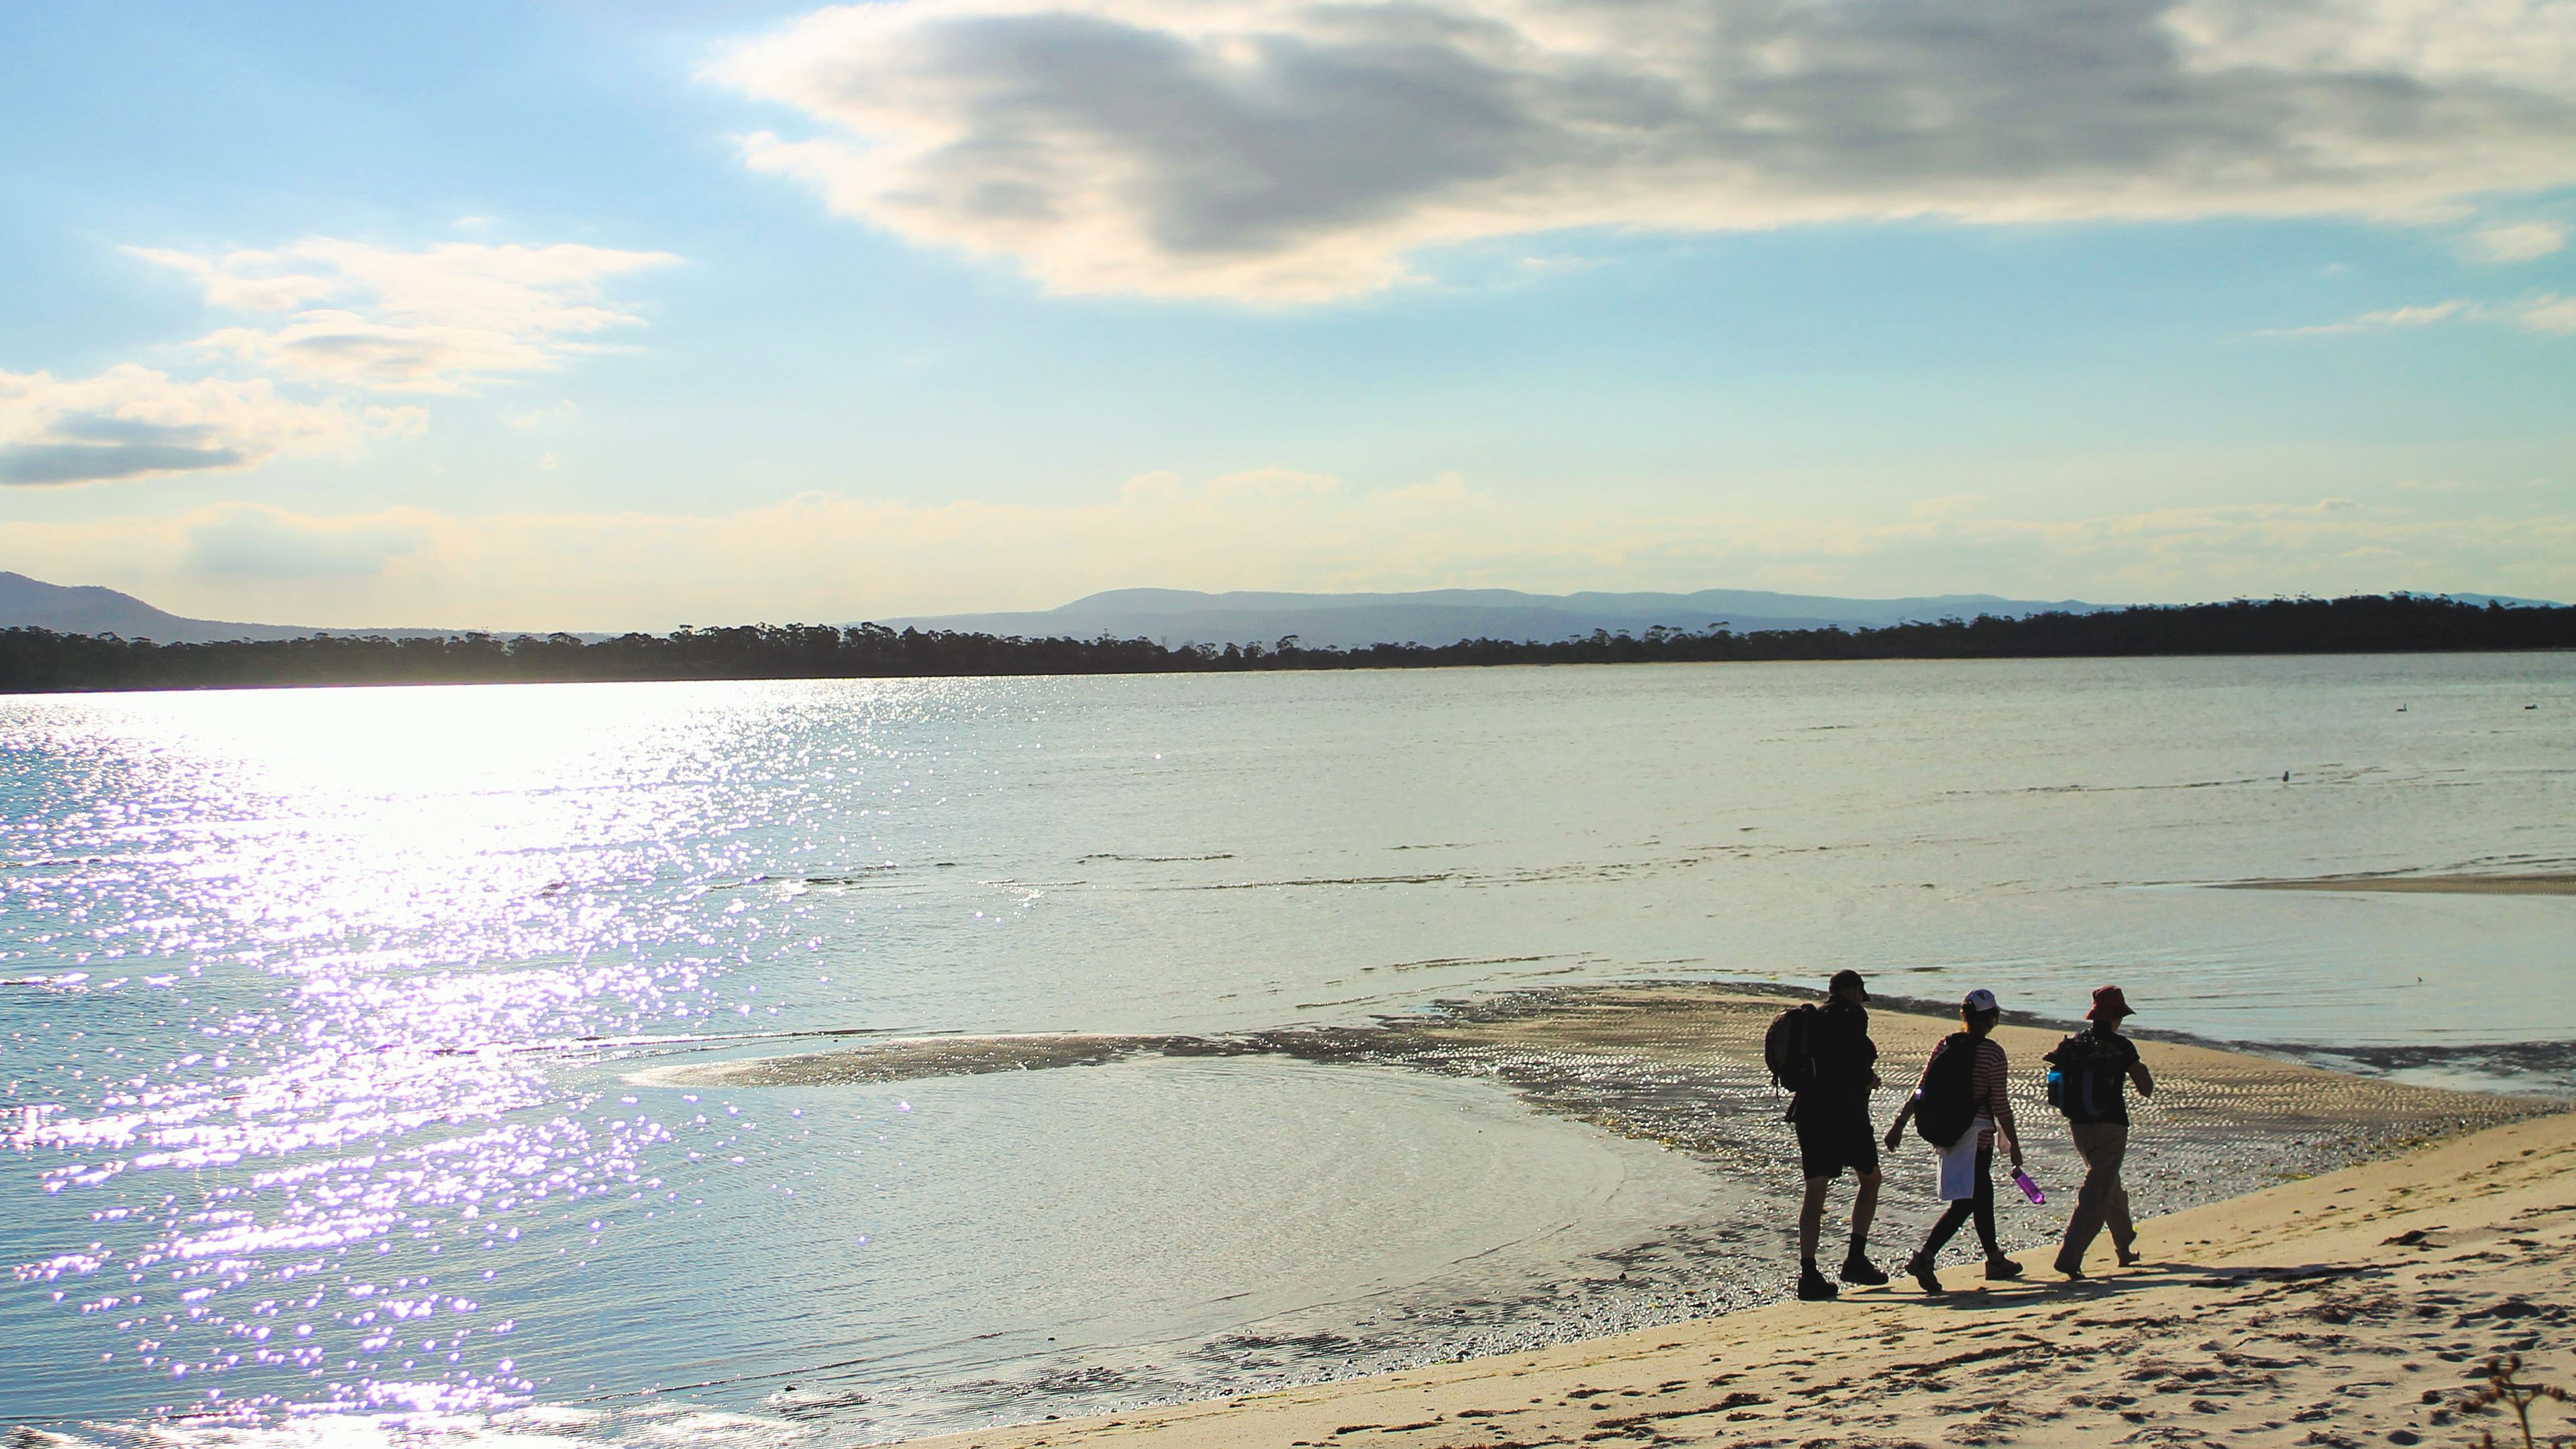 Beautiful view of Maria island with silhouette of people walking along the shore.